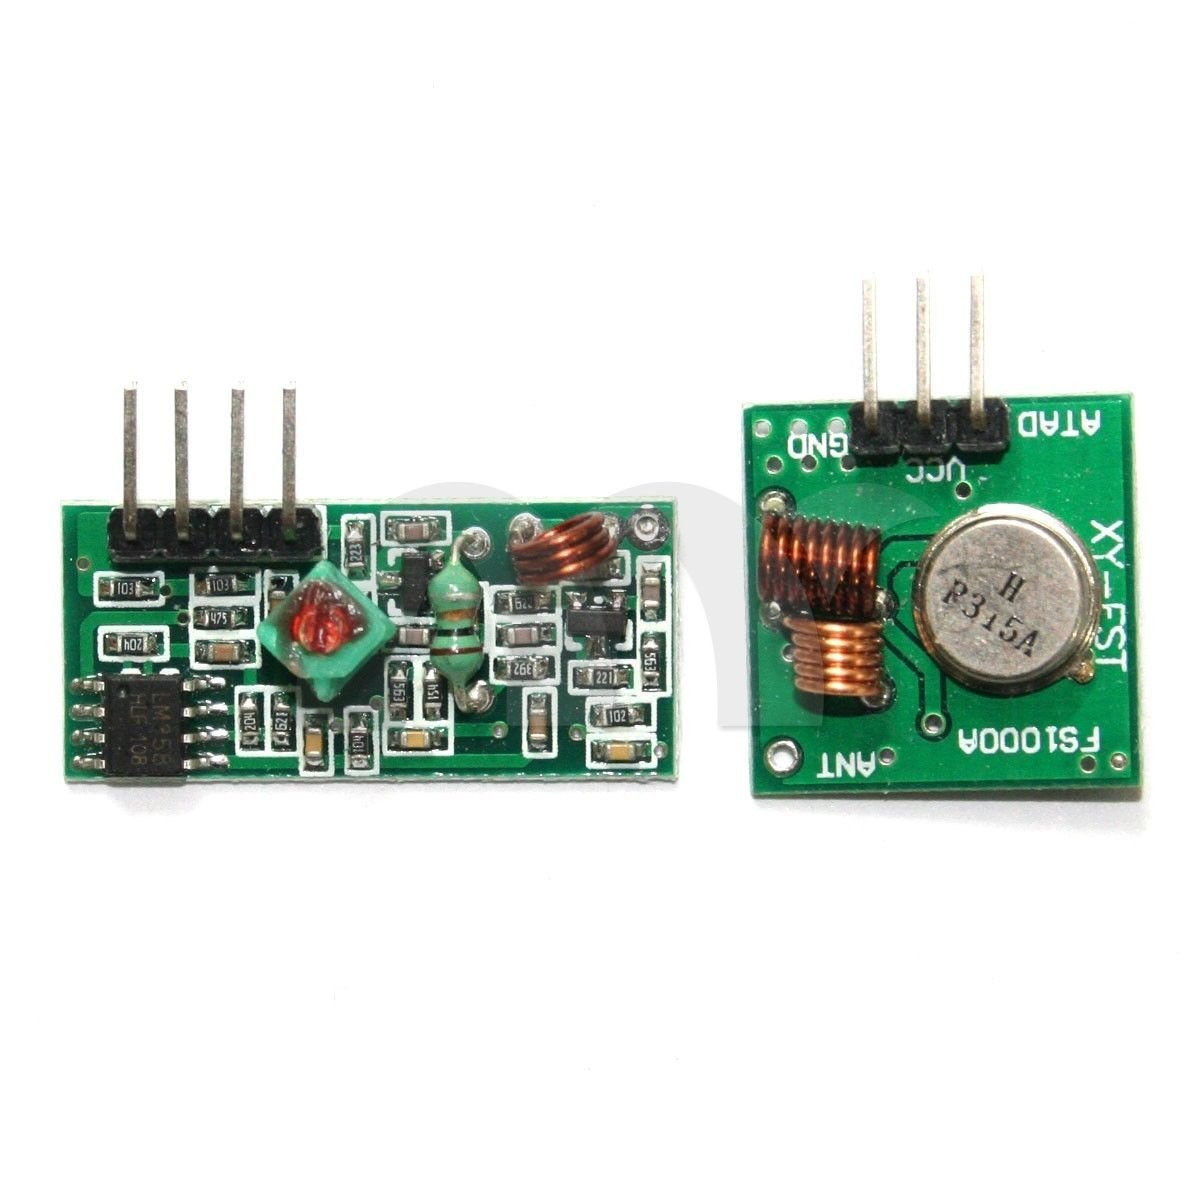 Cheap 315mhz Transmitter Circuit Find Rf Remote Control Board Garage Door 315 433mhz Get Quotations Eztronics Corp Module And Receiver Link Kit For Arduino Arm Mcu Wl